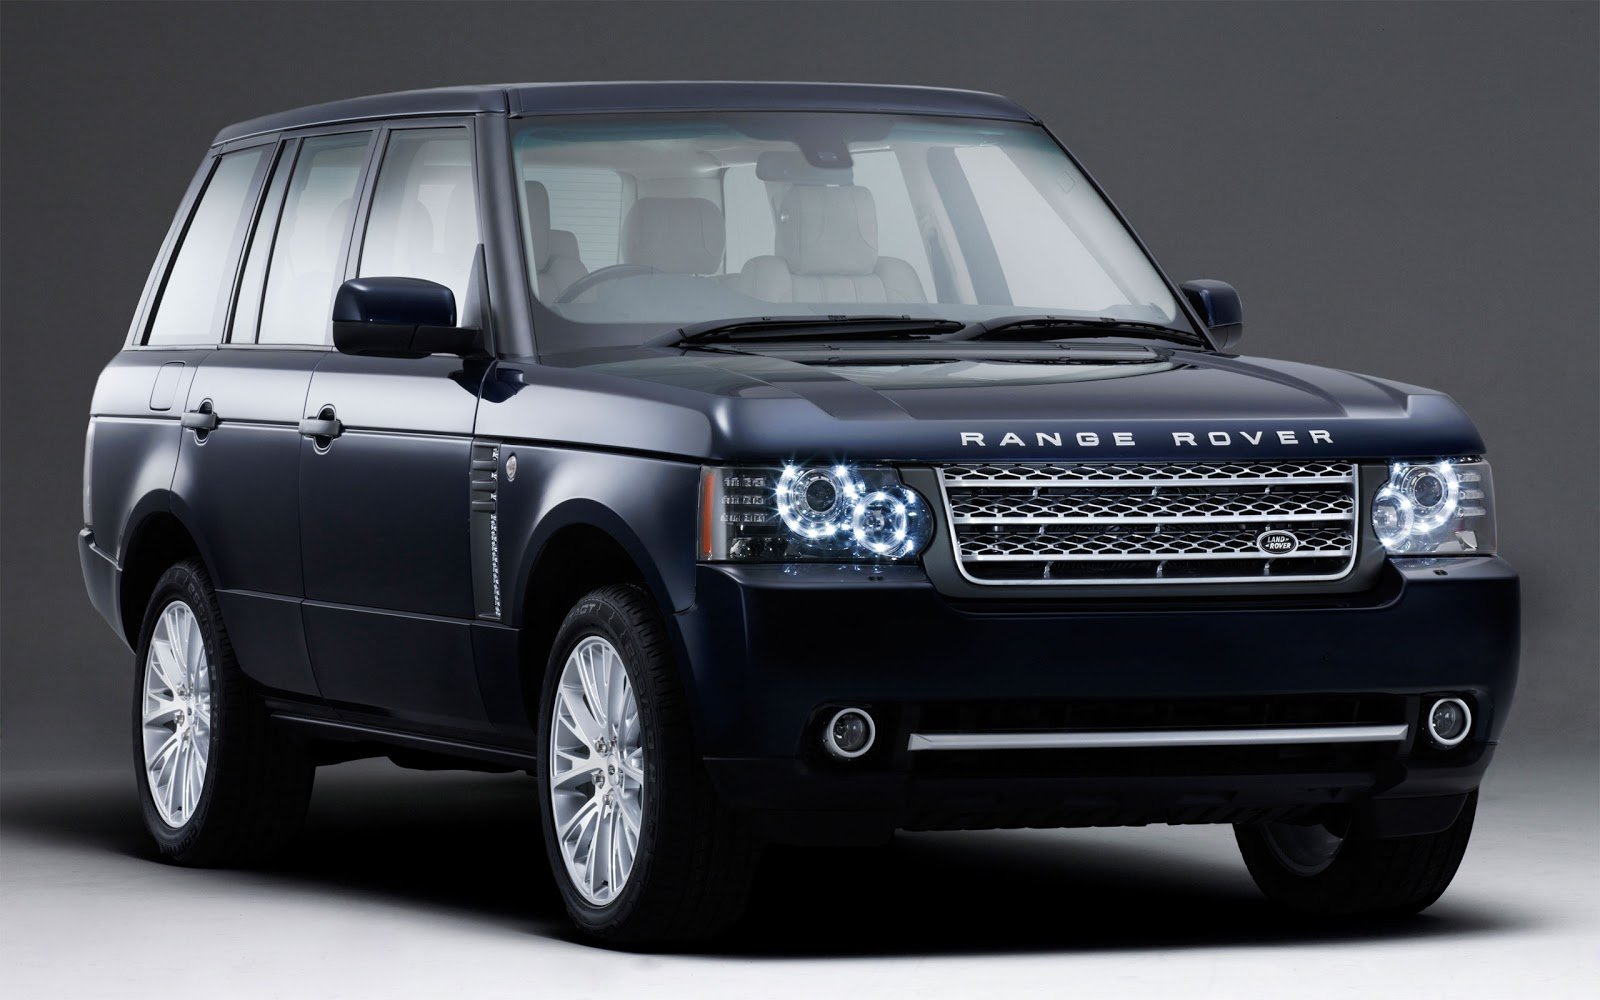 New 15 Range Rover Hd Desktop Wallpapers On This Month